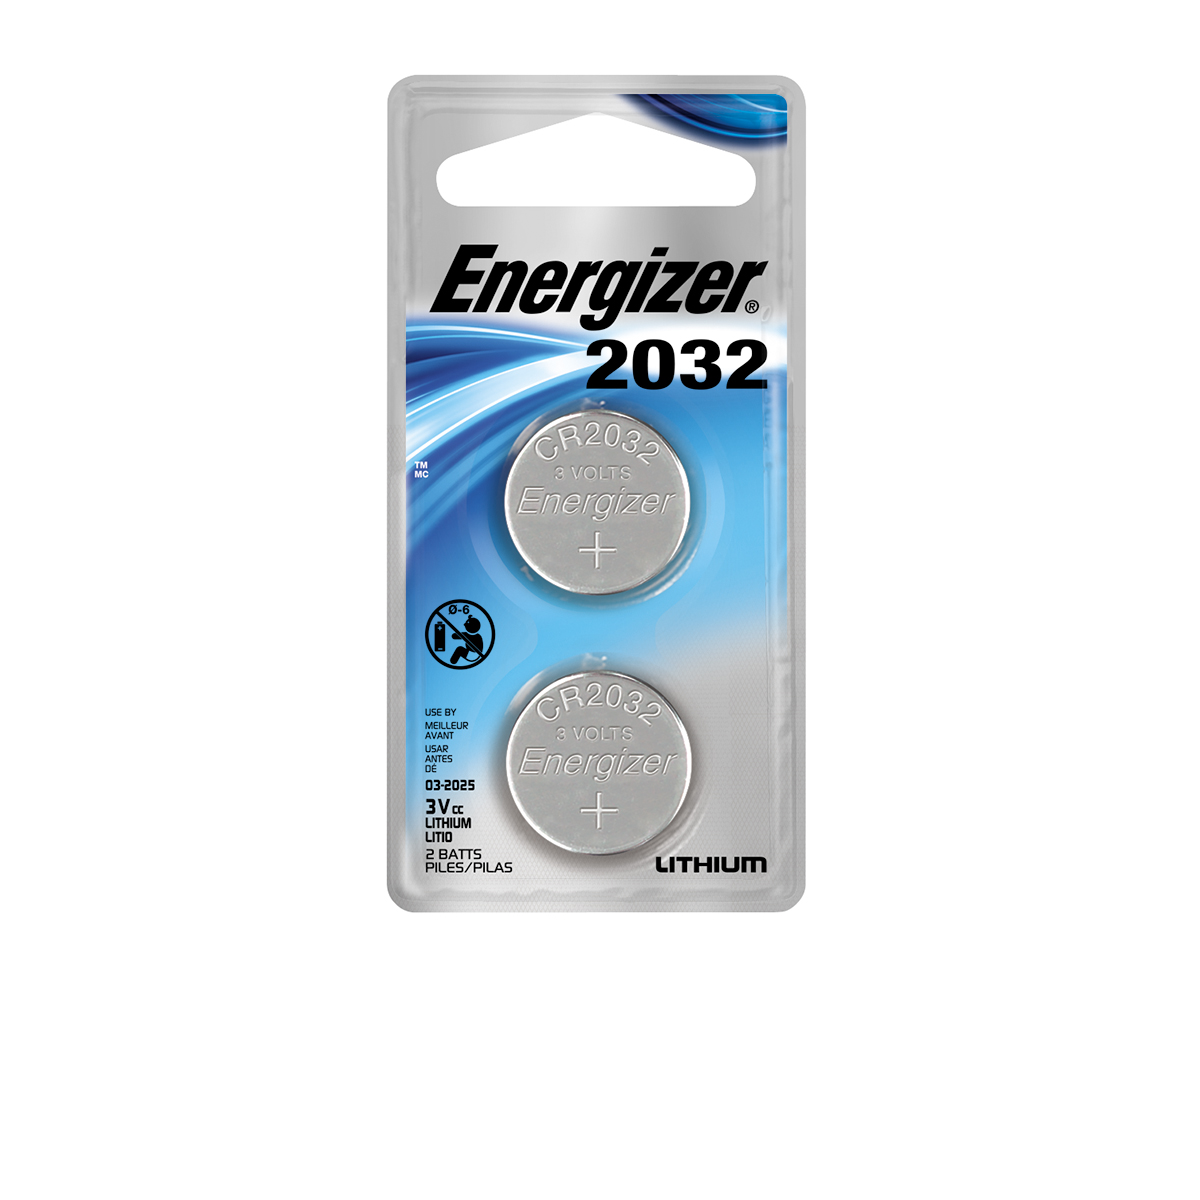 Energizer Lithium 2032 Coin Battery, 2 Count